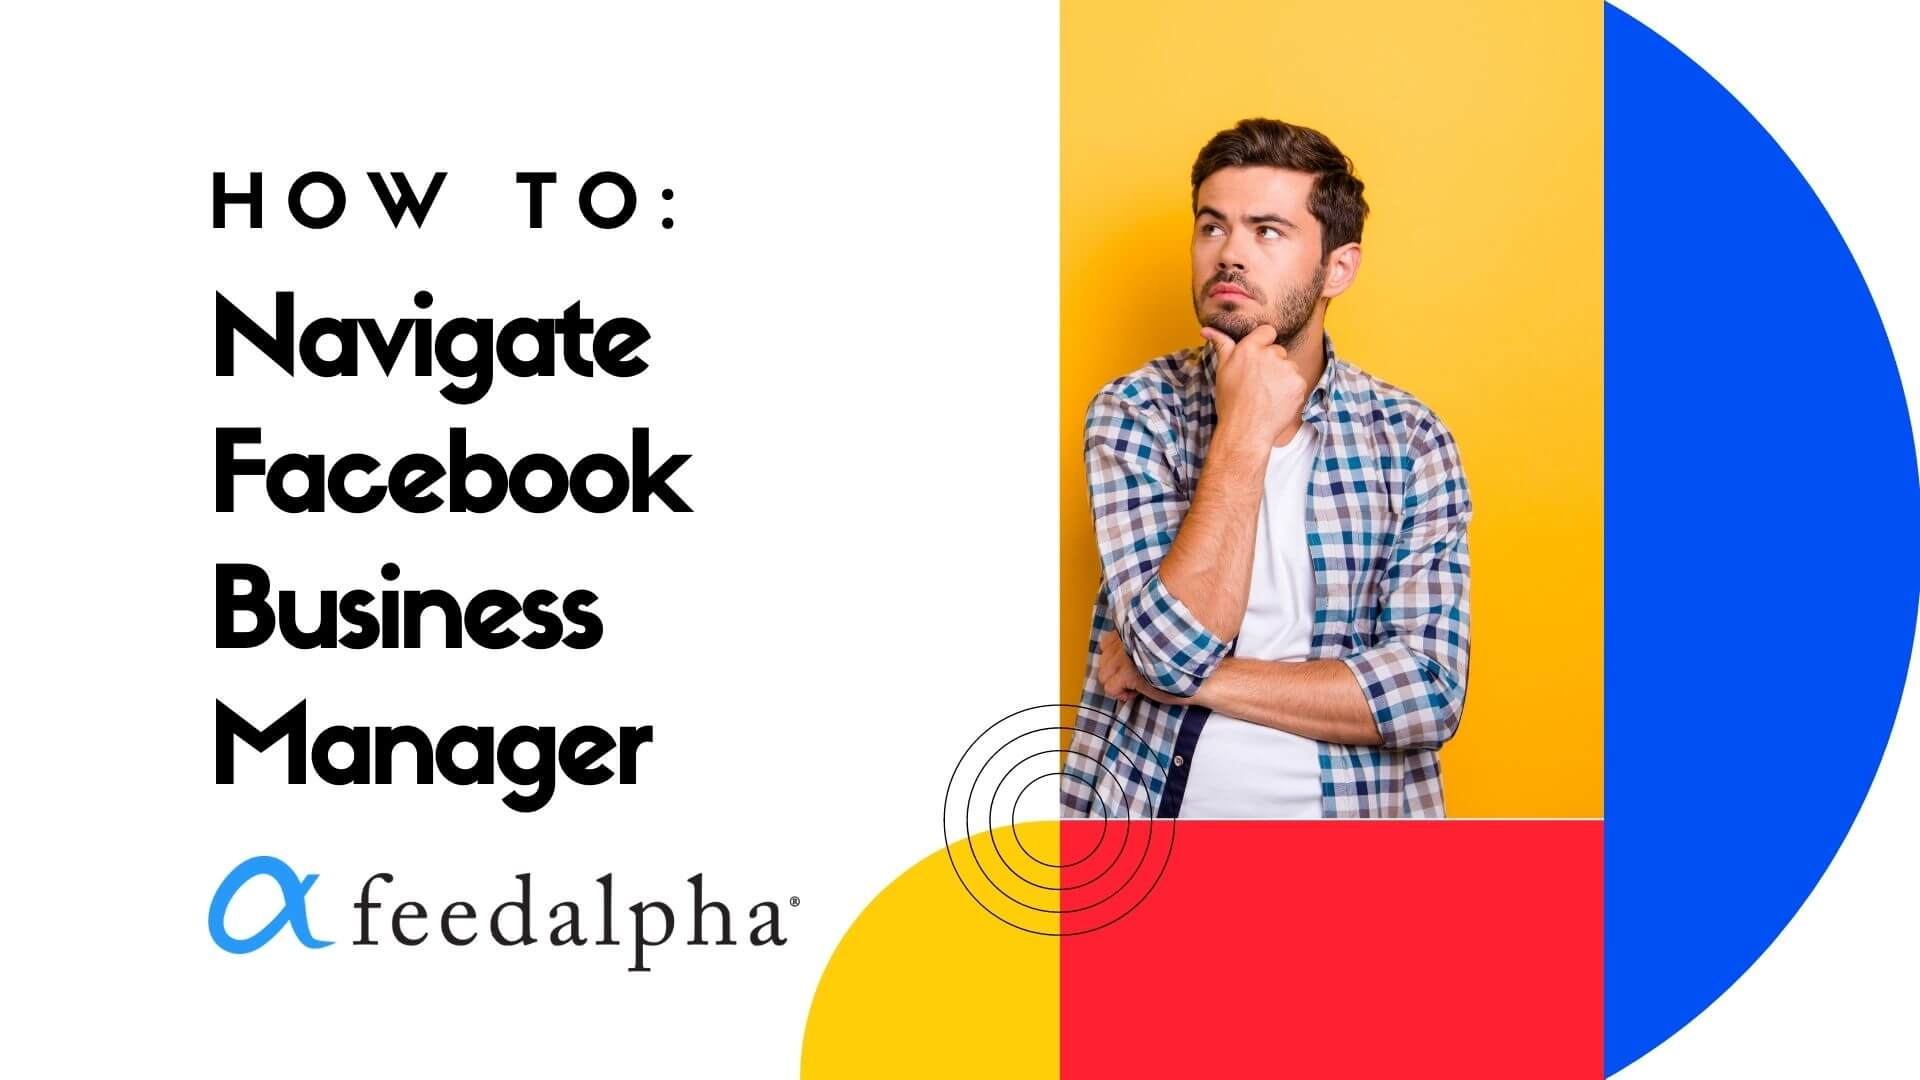 feedalpha how to Facebook business manager